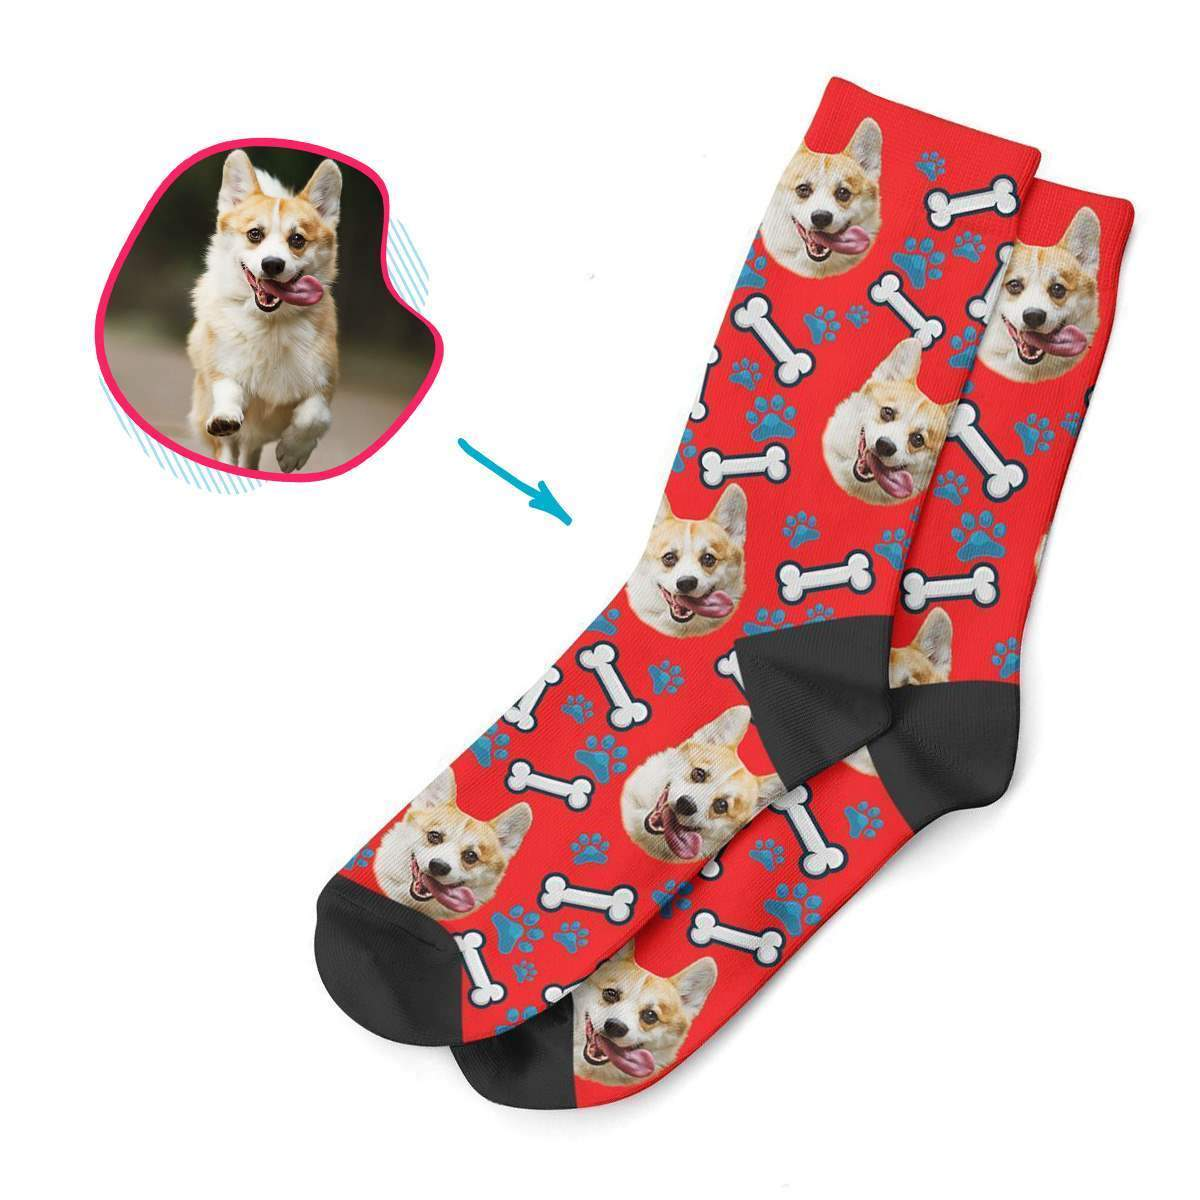 red Dog socks personalized with photo of face printed on them